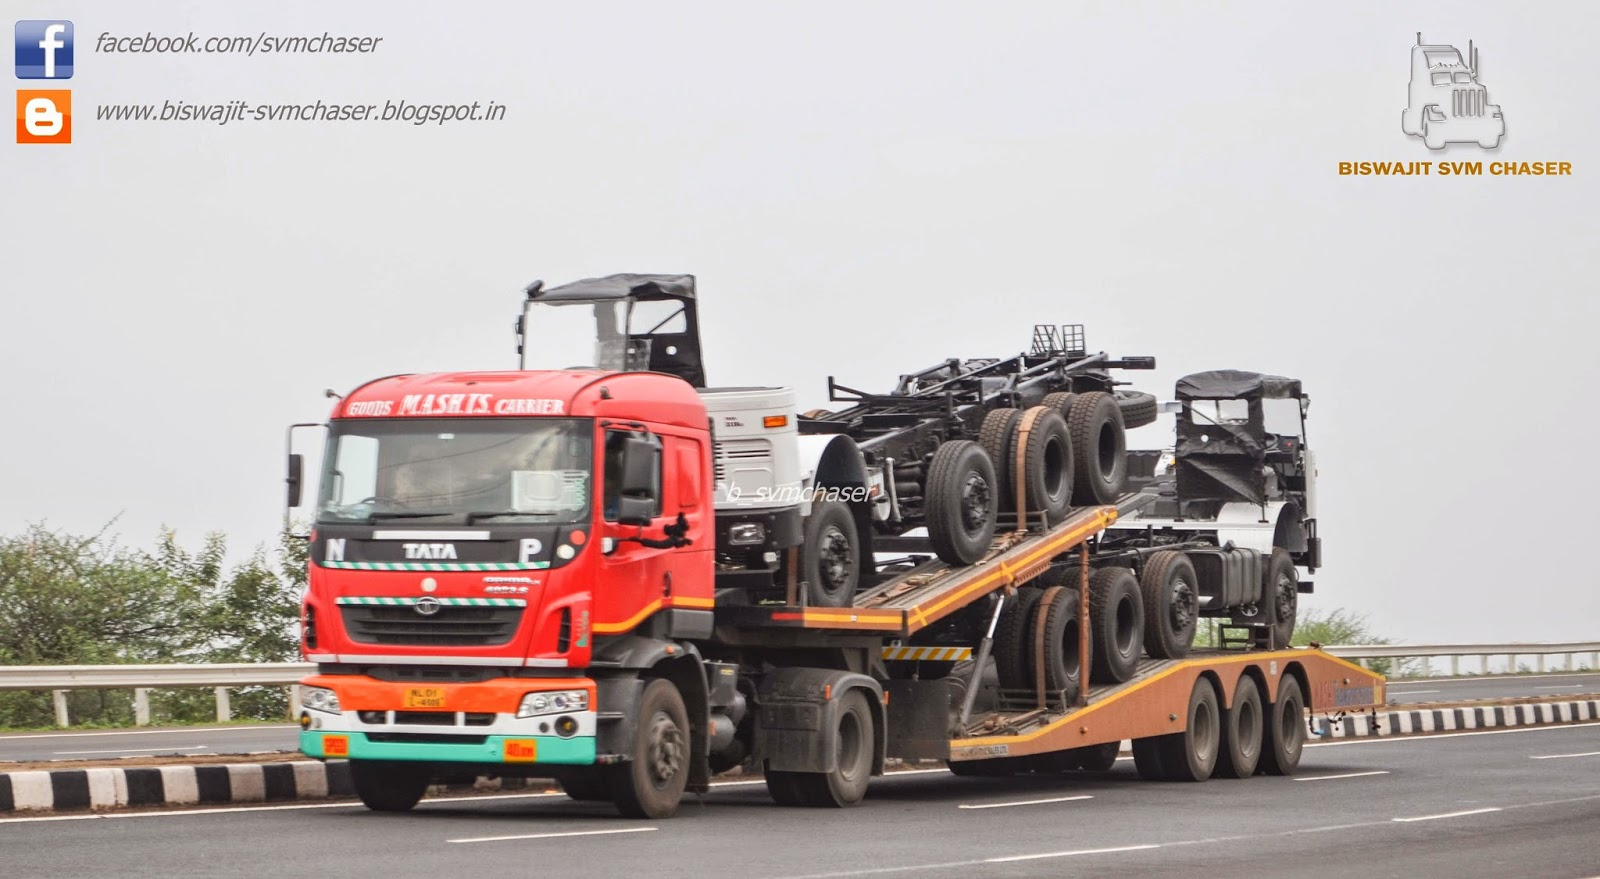 TATA Prima LX Trailer carrying TATA Truck Chassis ...